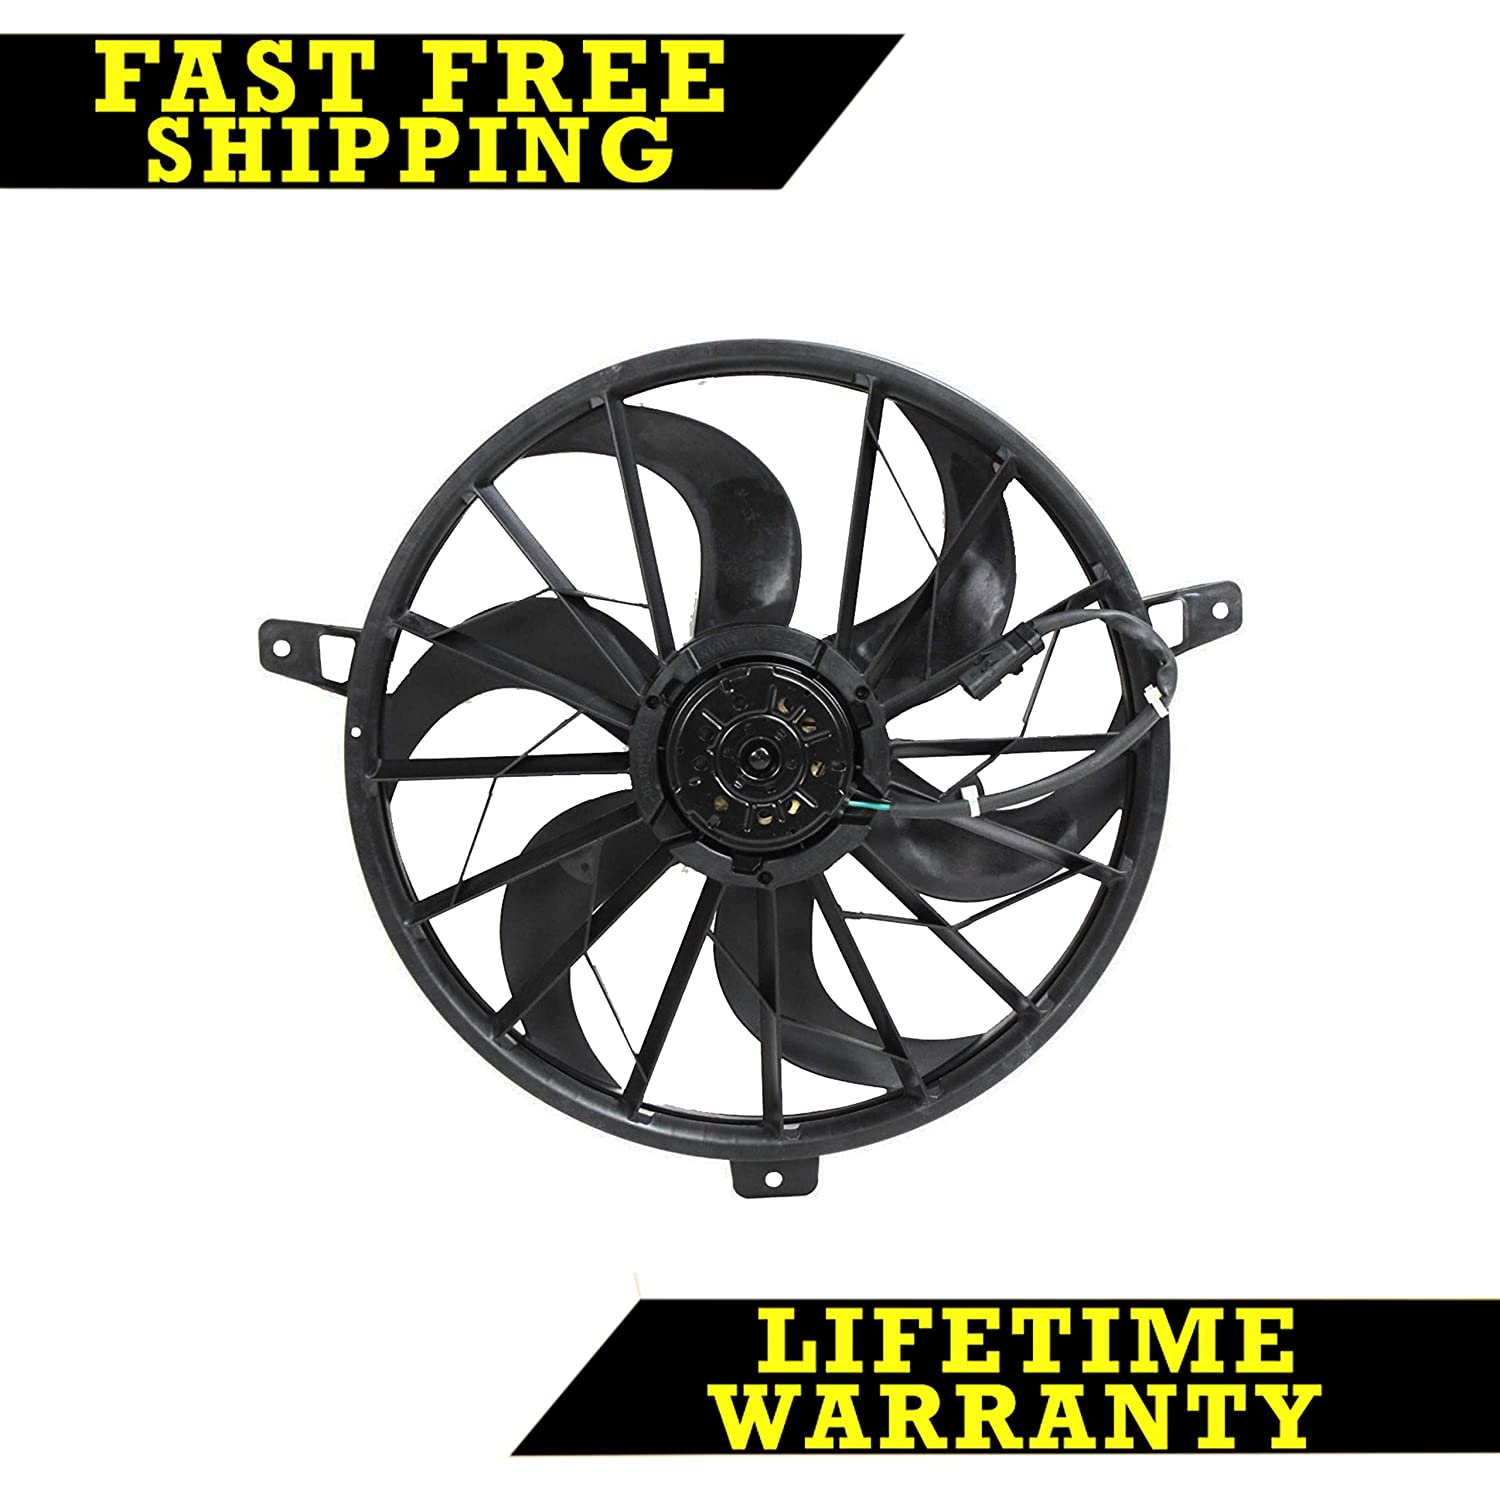 RADIATOR COOLING FAN FOR JEEP FITS GRAND CHEROKEE LIBERTY CH3116115 Sunbelt Radiators